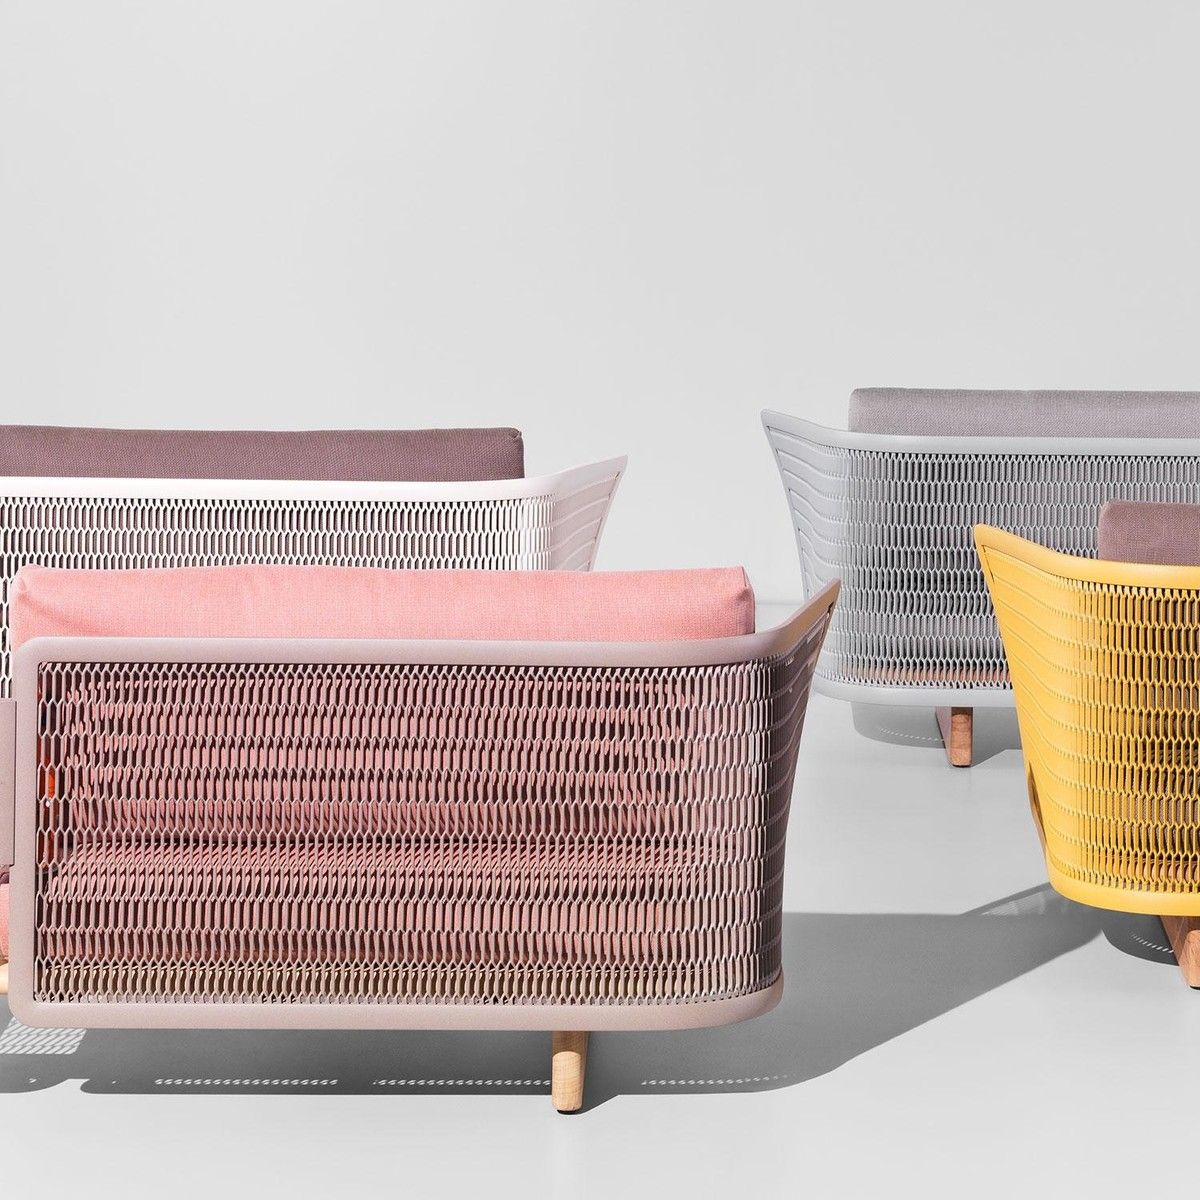 Kettal Mesh Outdoor Sofa Muebles Arquitectura Pinterest  # Muebles Fiction